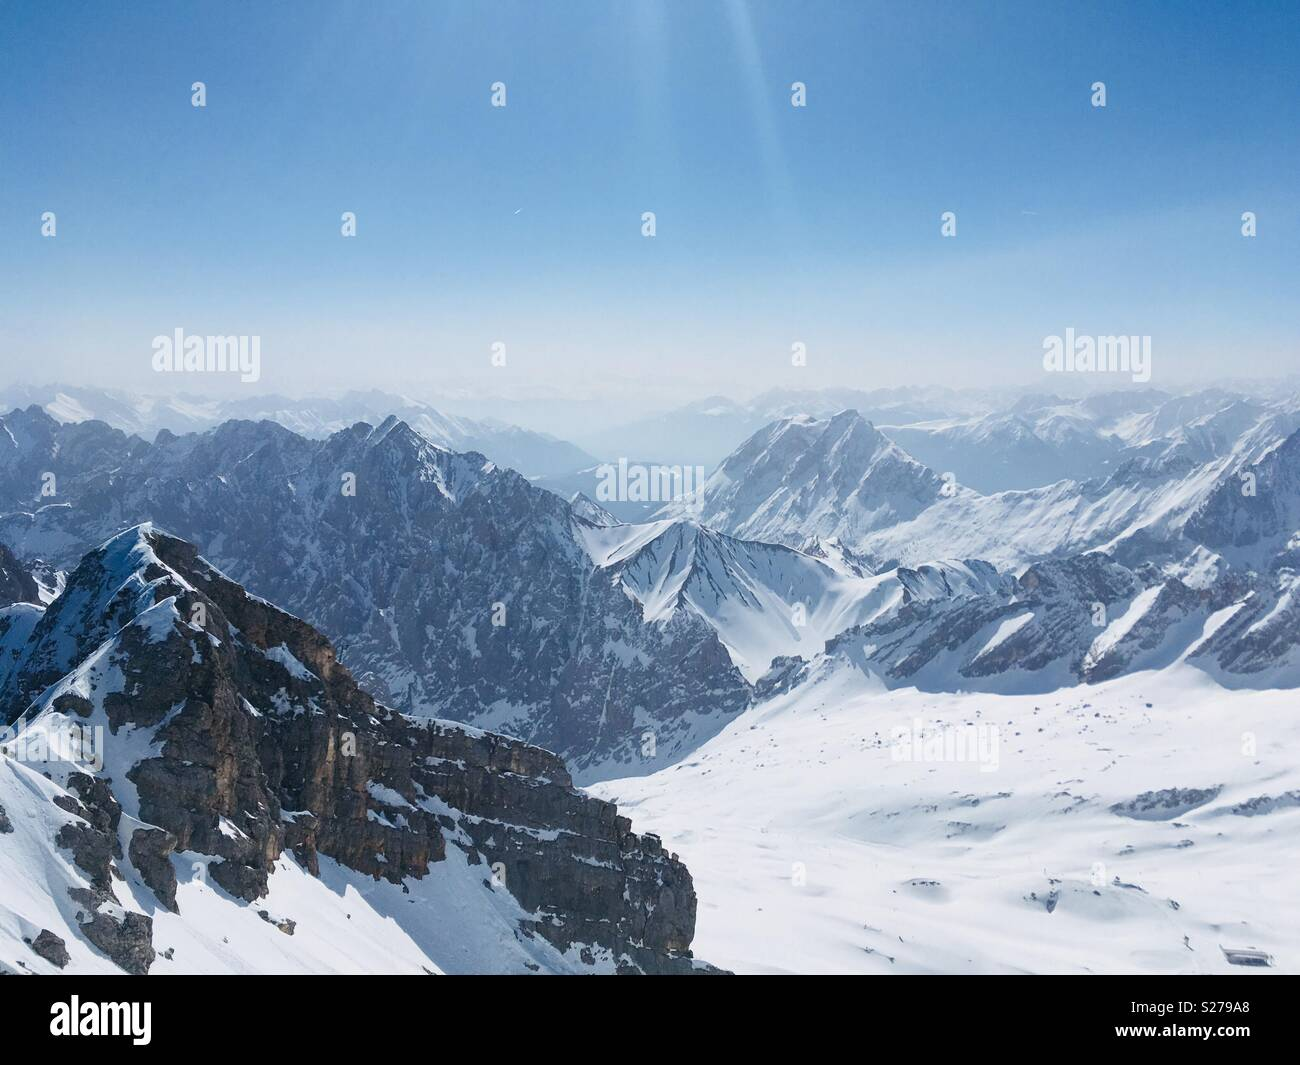 A beautiful morning in the alps. - Stock Image